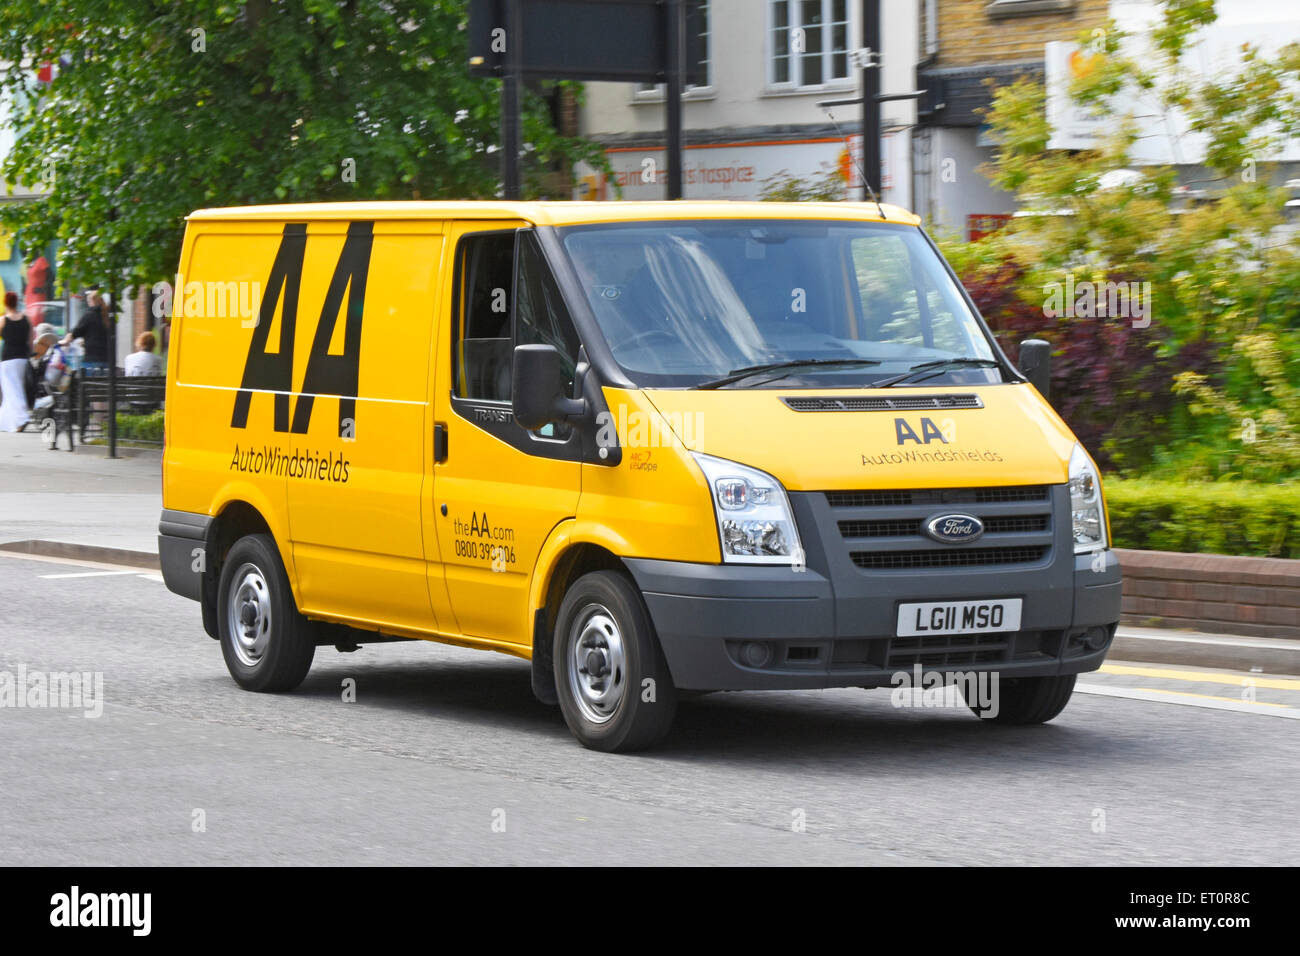 AA breakdown van driving along town centre high street deals with Auto Windshield repairs and breakdowns Brentwood - Stock Image